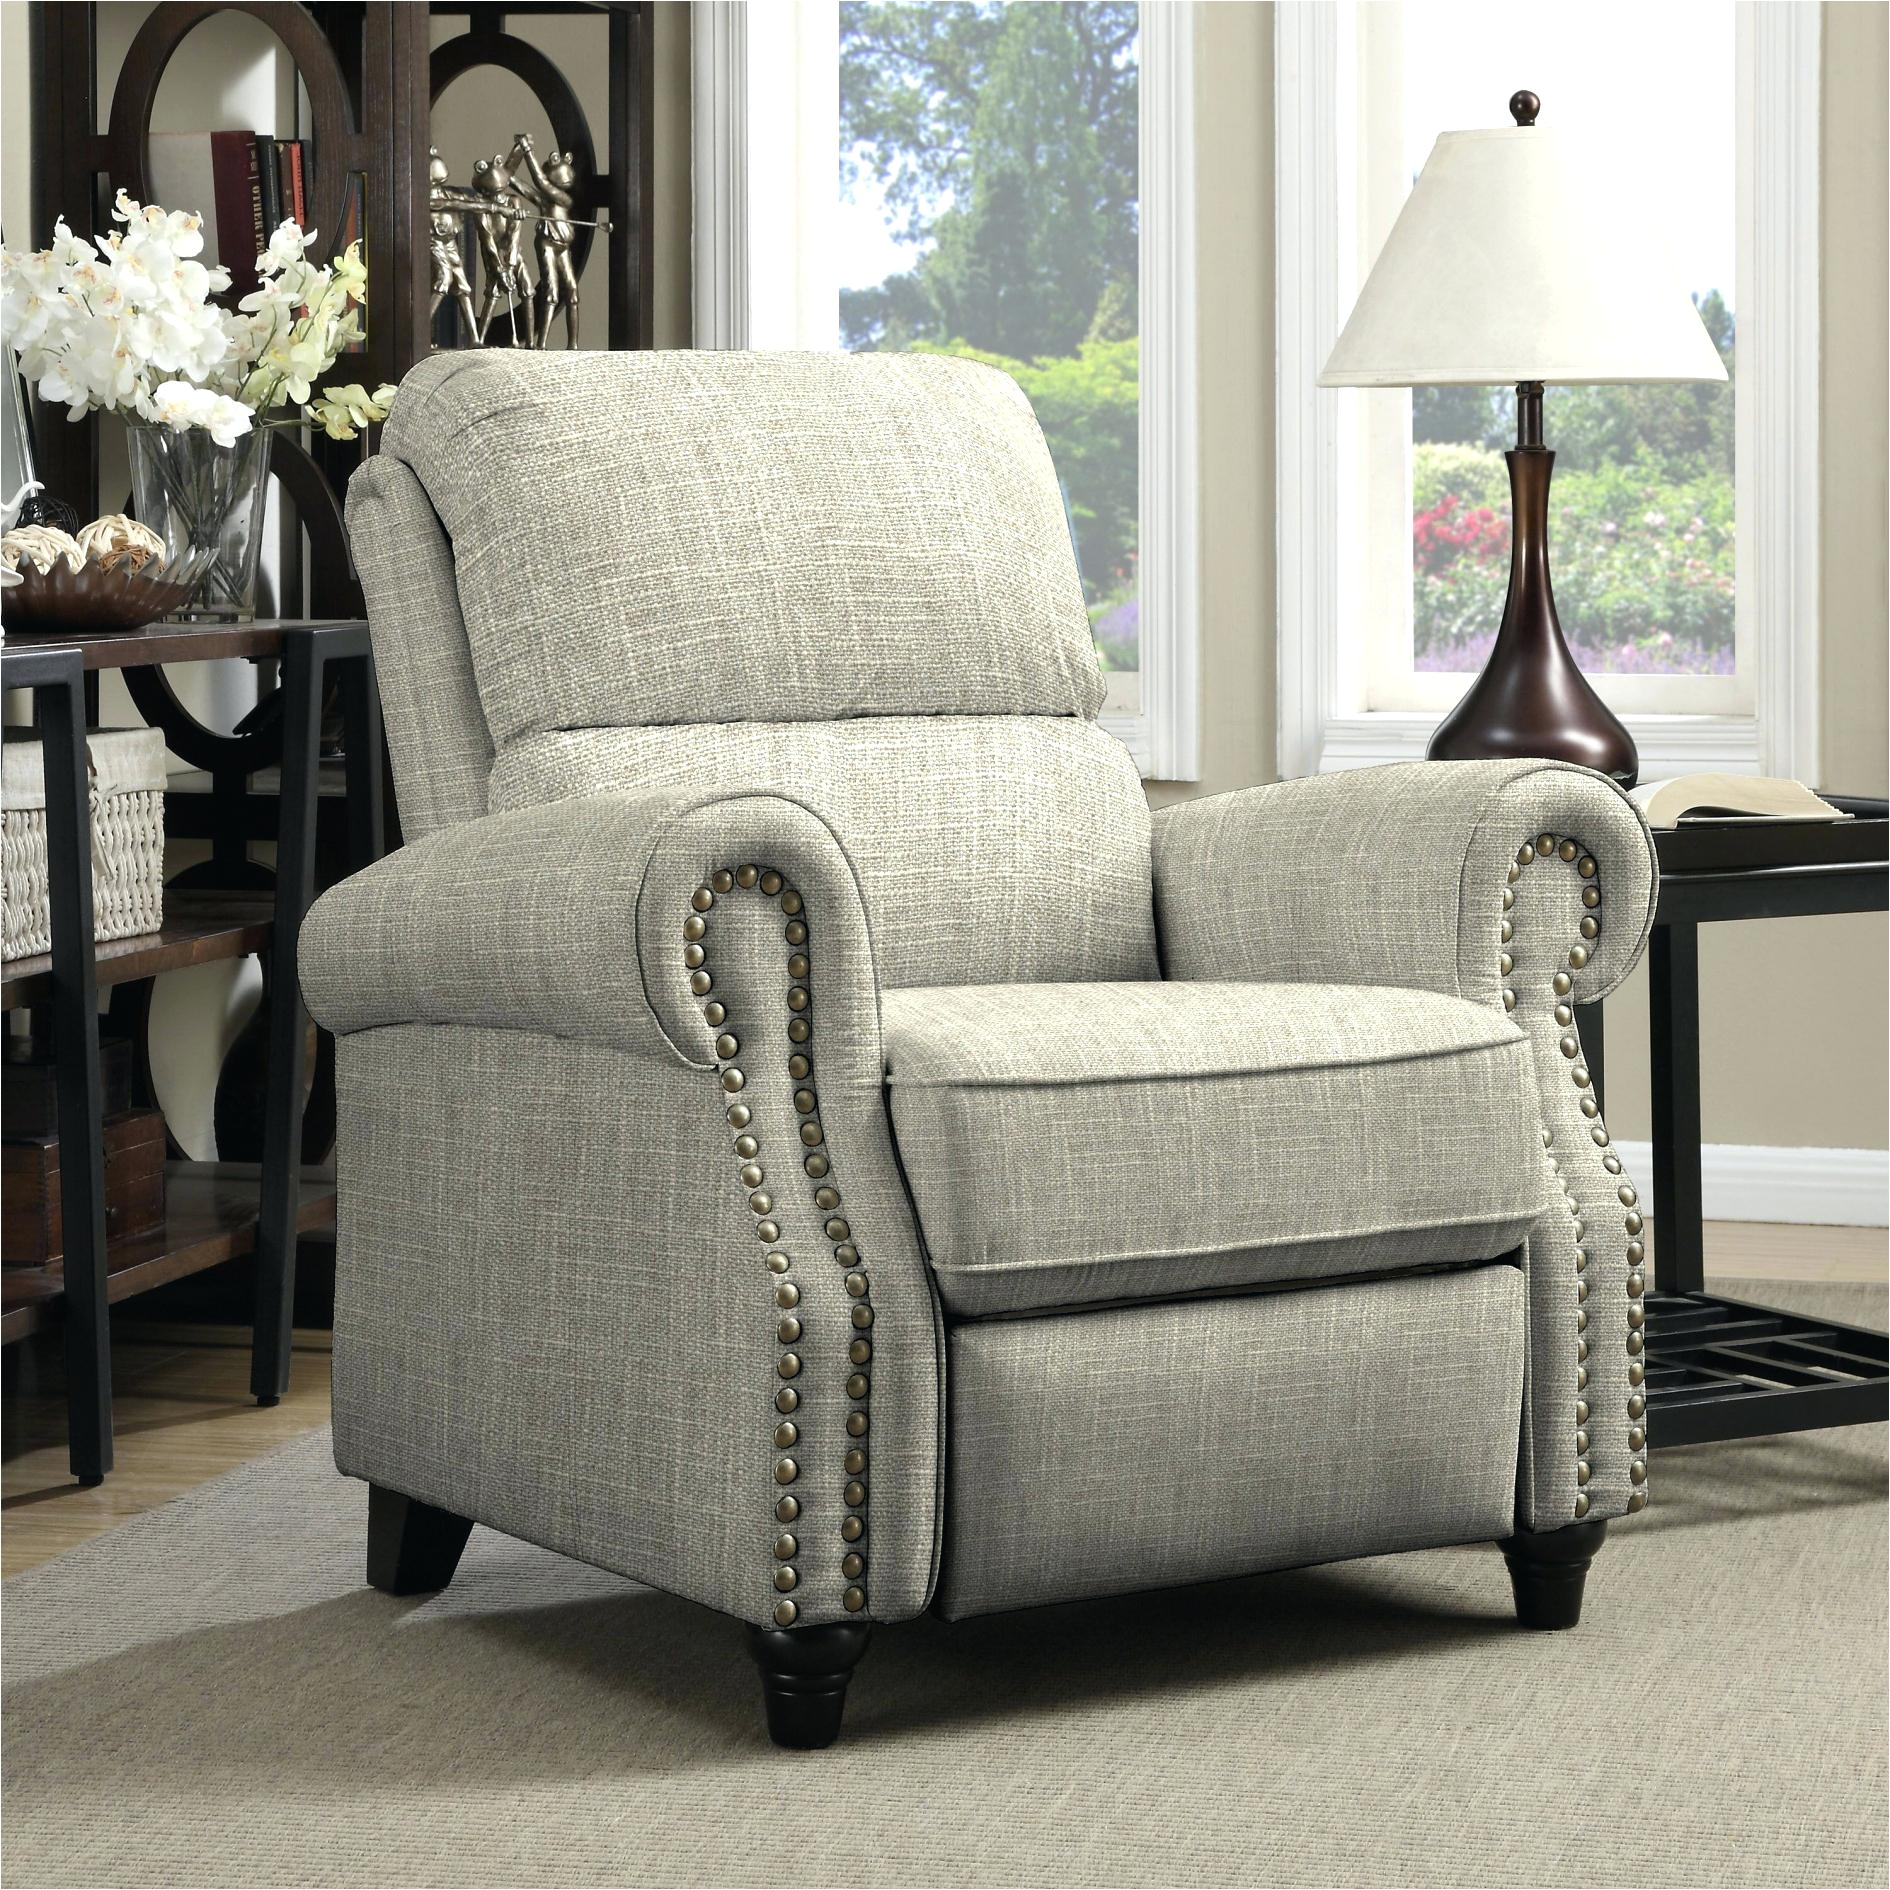 Pottery Barn Chair And A Half Pottery Barn Chair And A Half Toddler Reviews  Malabar Cushions